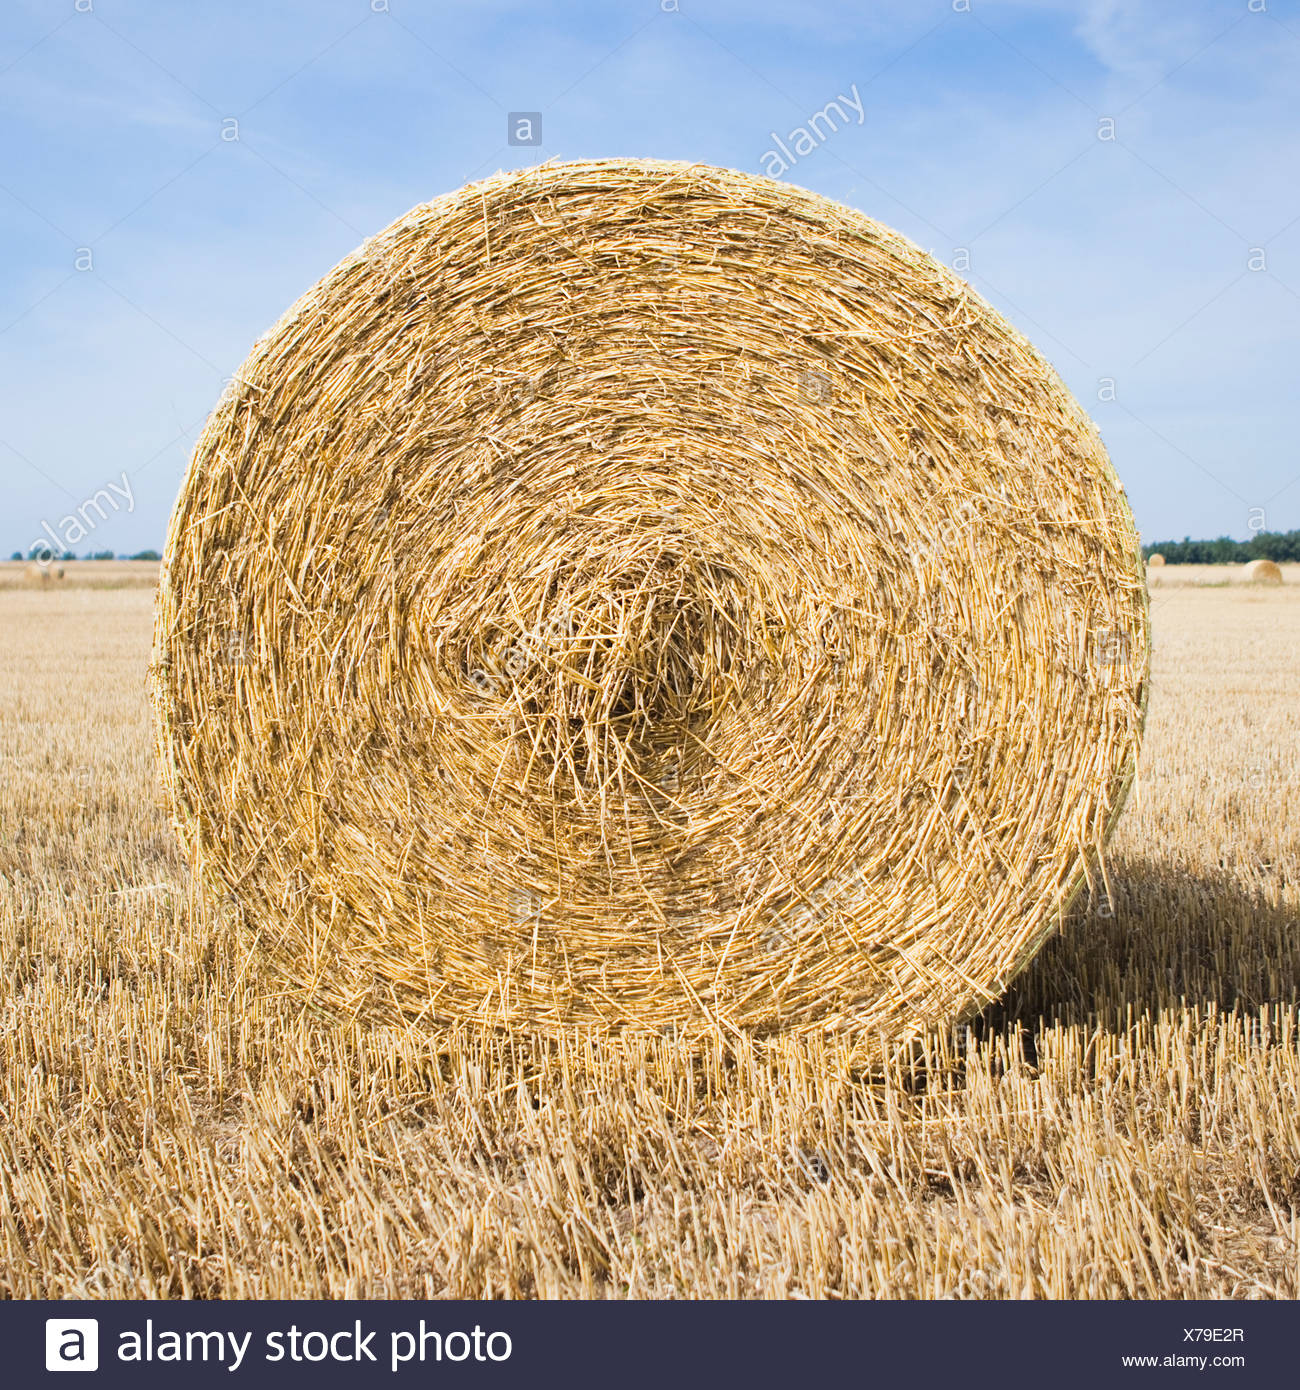 Big hay bale on a field - Stock Image